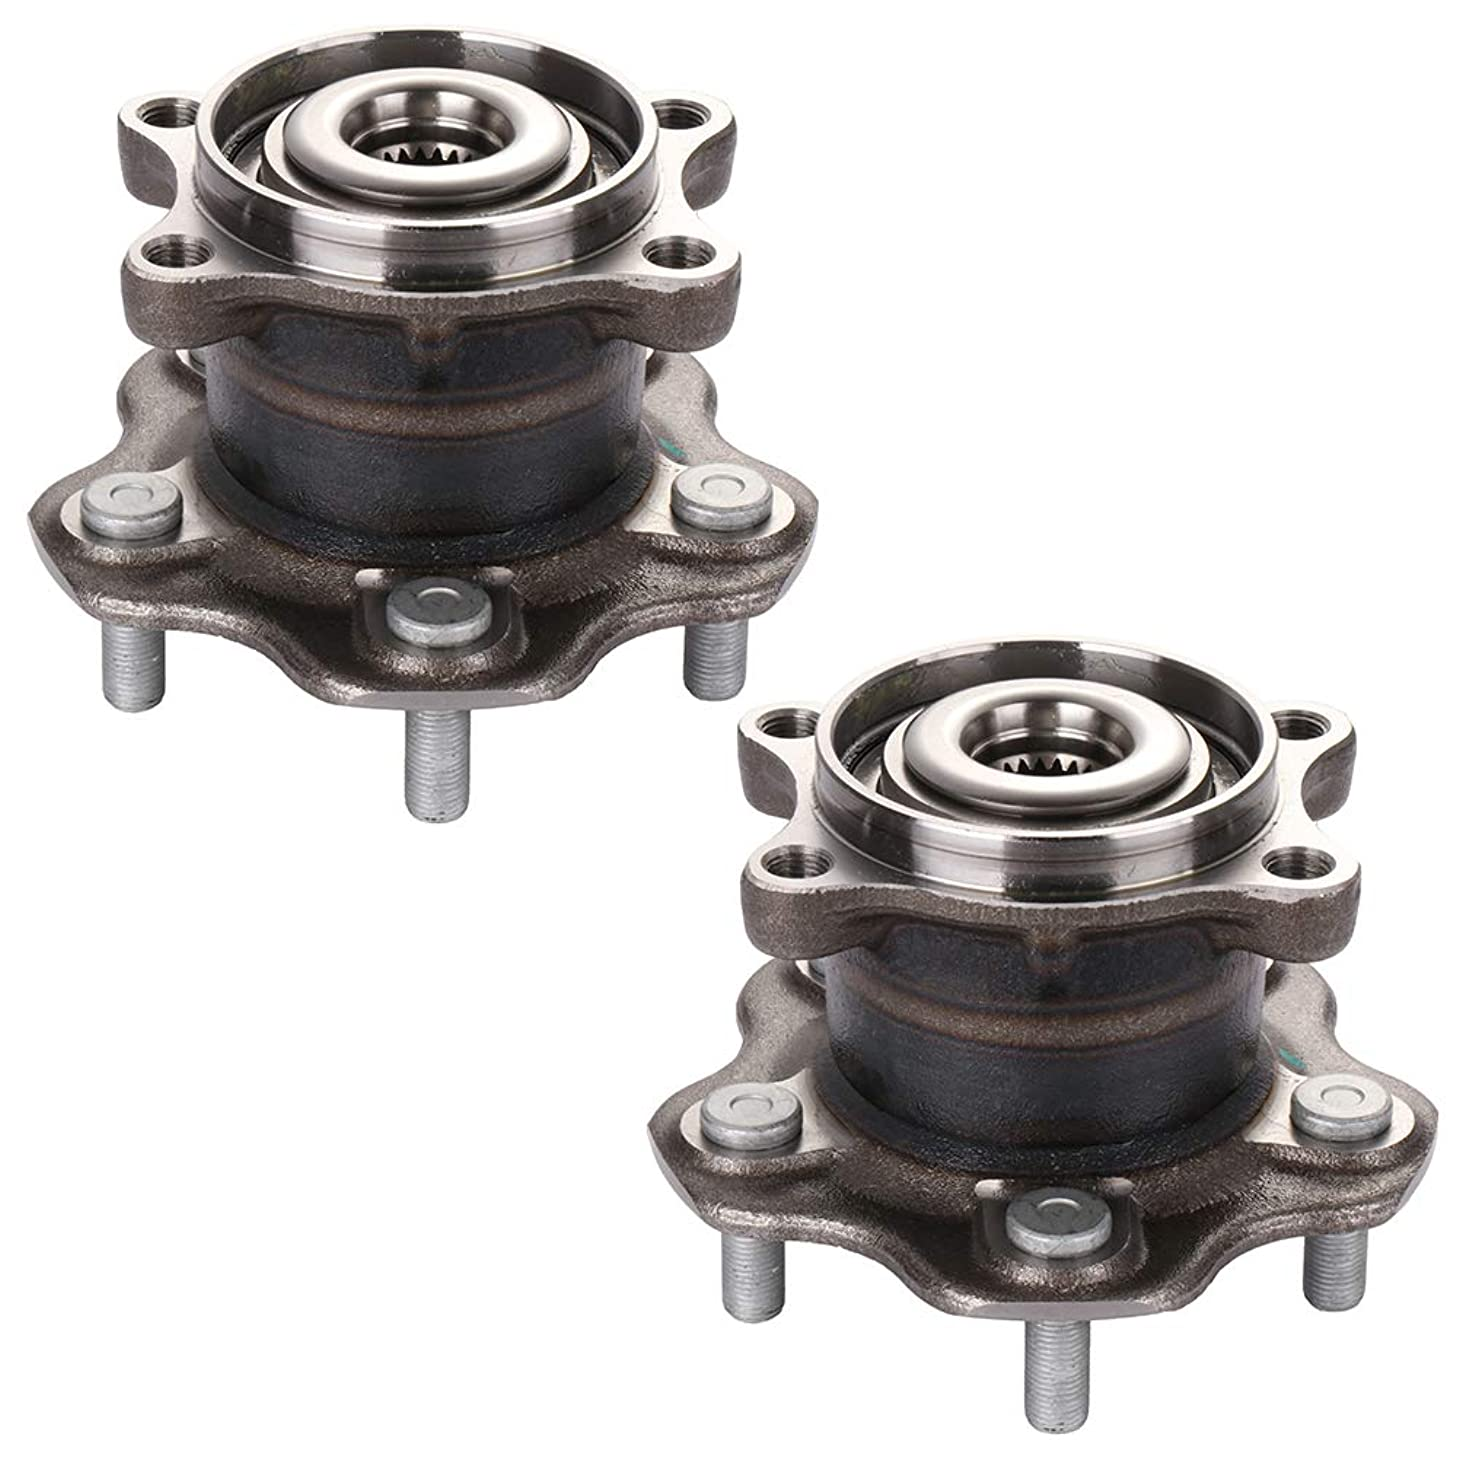 ECCPP Wheel Hub and Bearing Assembly Rear 512373 fit 2006-2019 Nissan Rogue S35 Qashqai J10f Dualis Replacement for 5 lugs Wheel hub Without ABS 2 Pieces